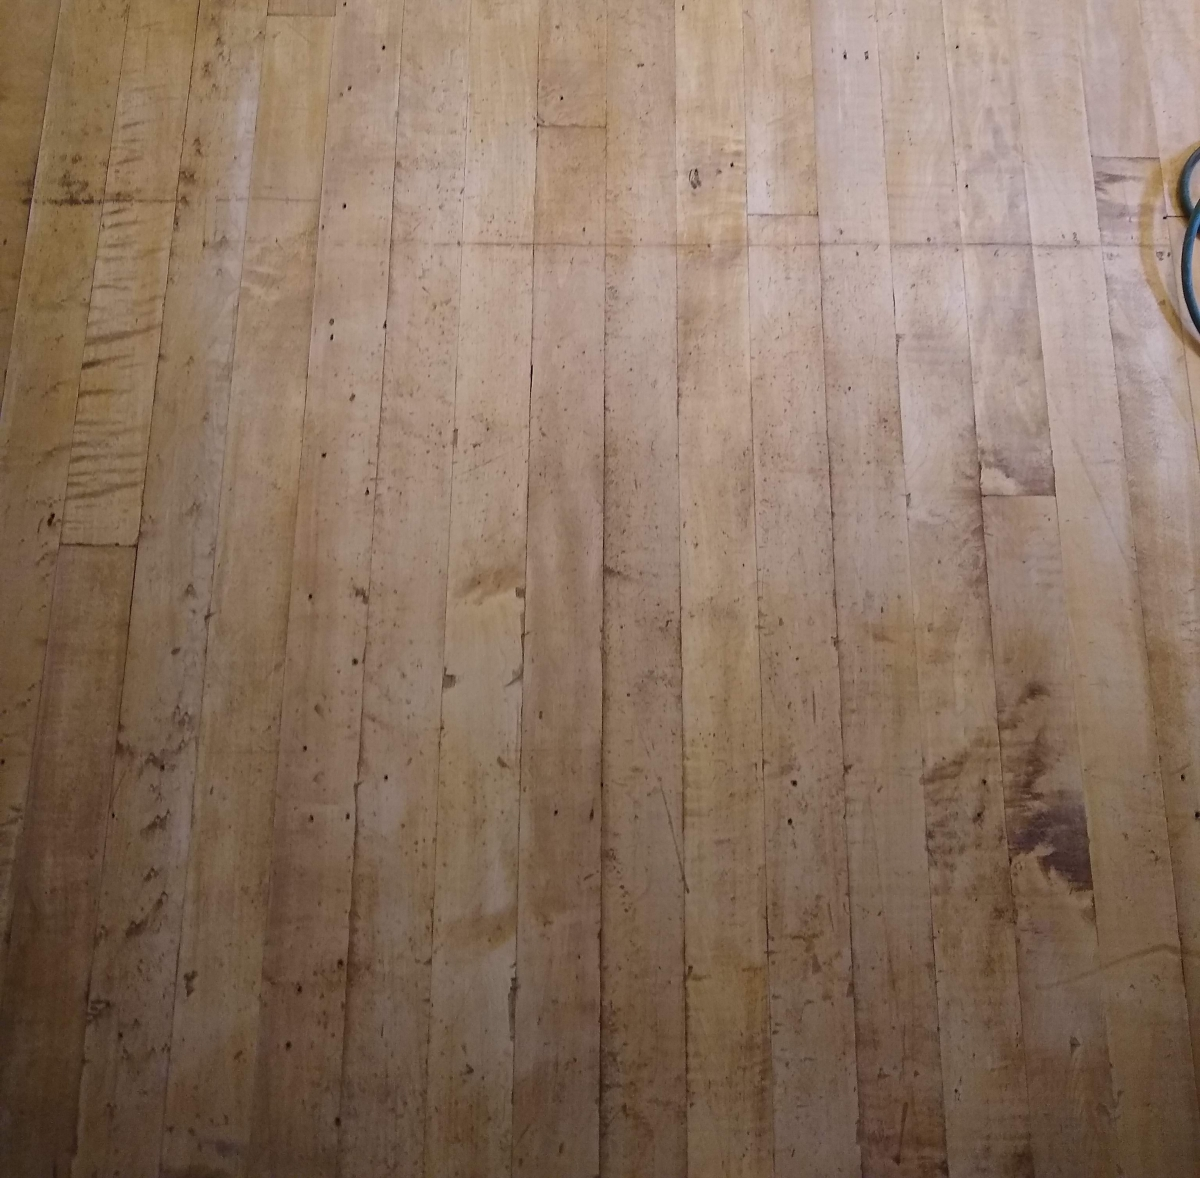 An image of 100 year old maple floorboards with no finish.